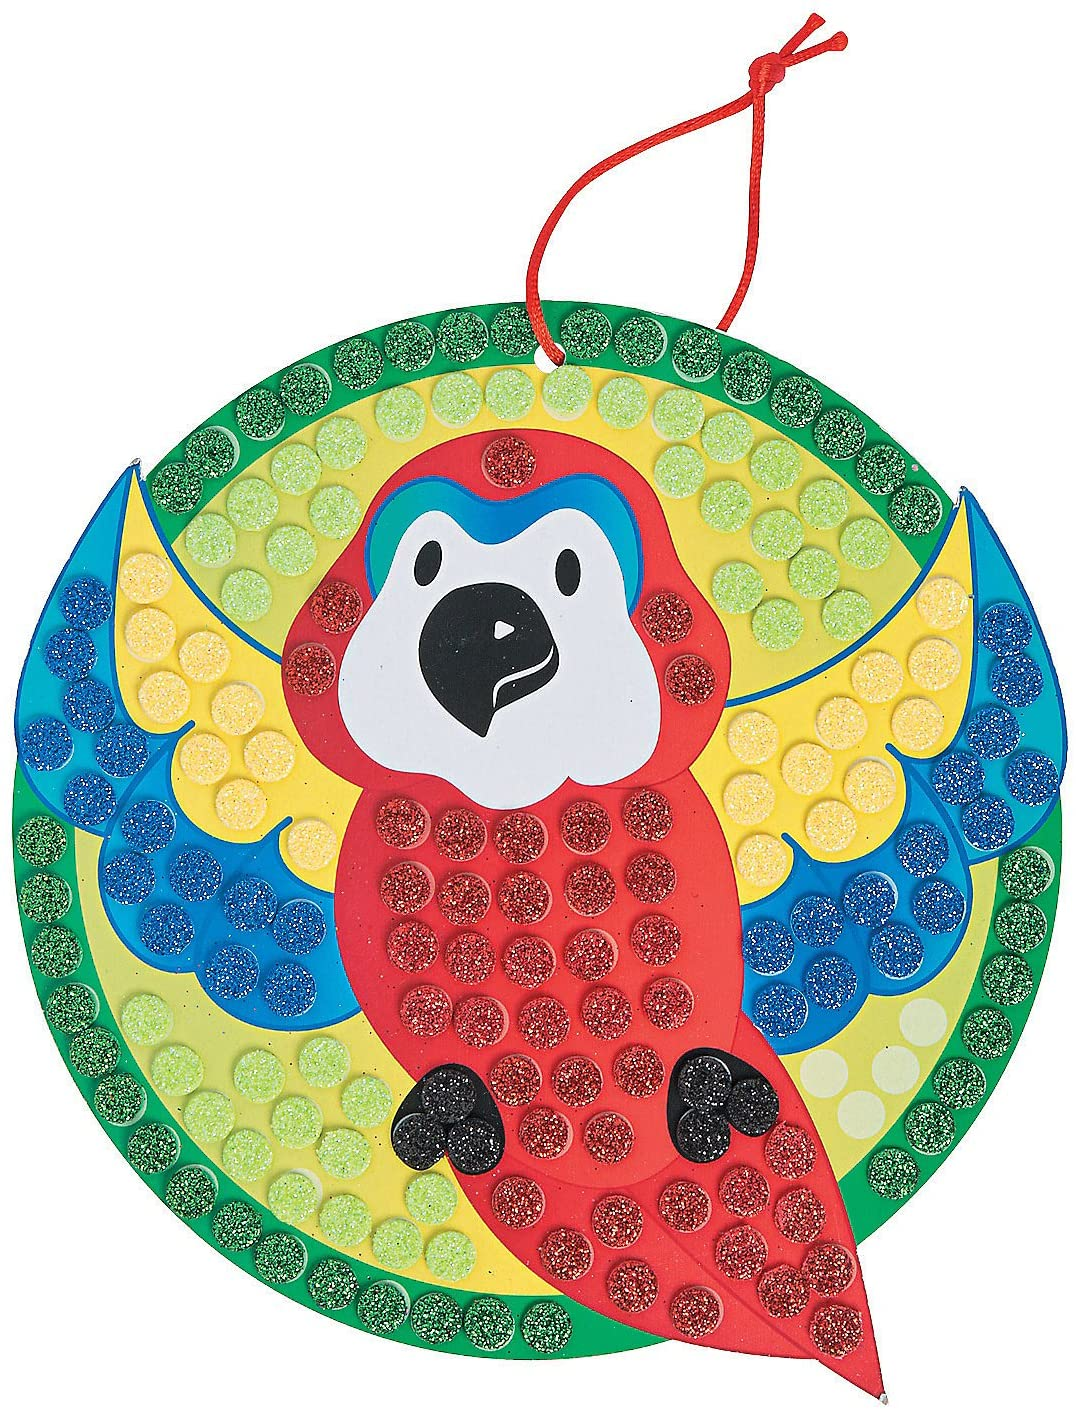 Glitter Mosaic Tropical Parrot Craft Kit -12 - Crafts for Kids and Fun Home Activities